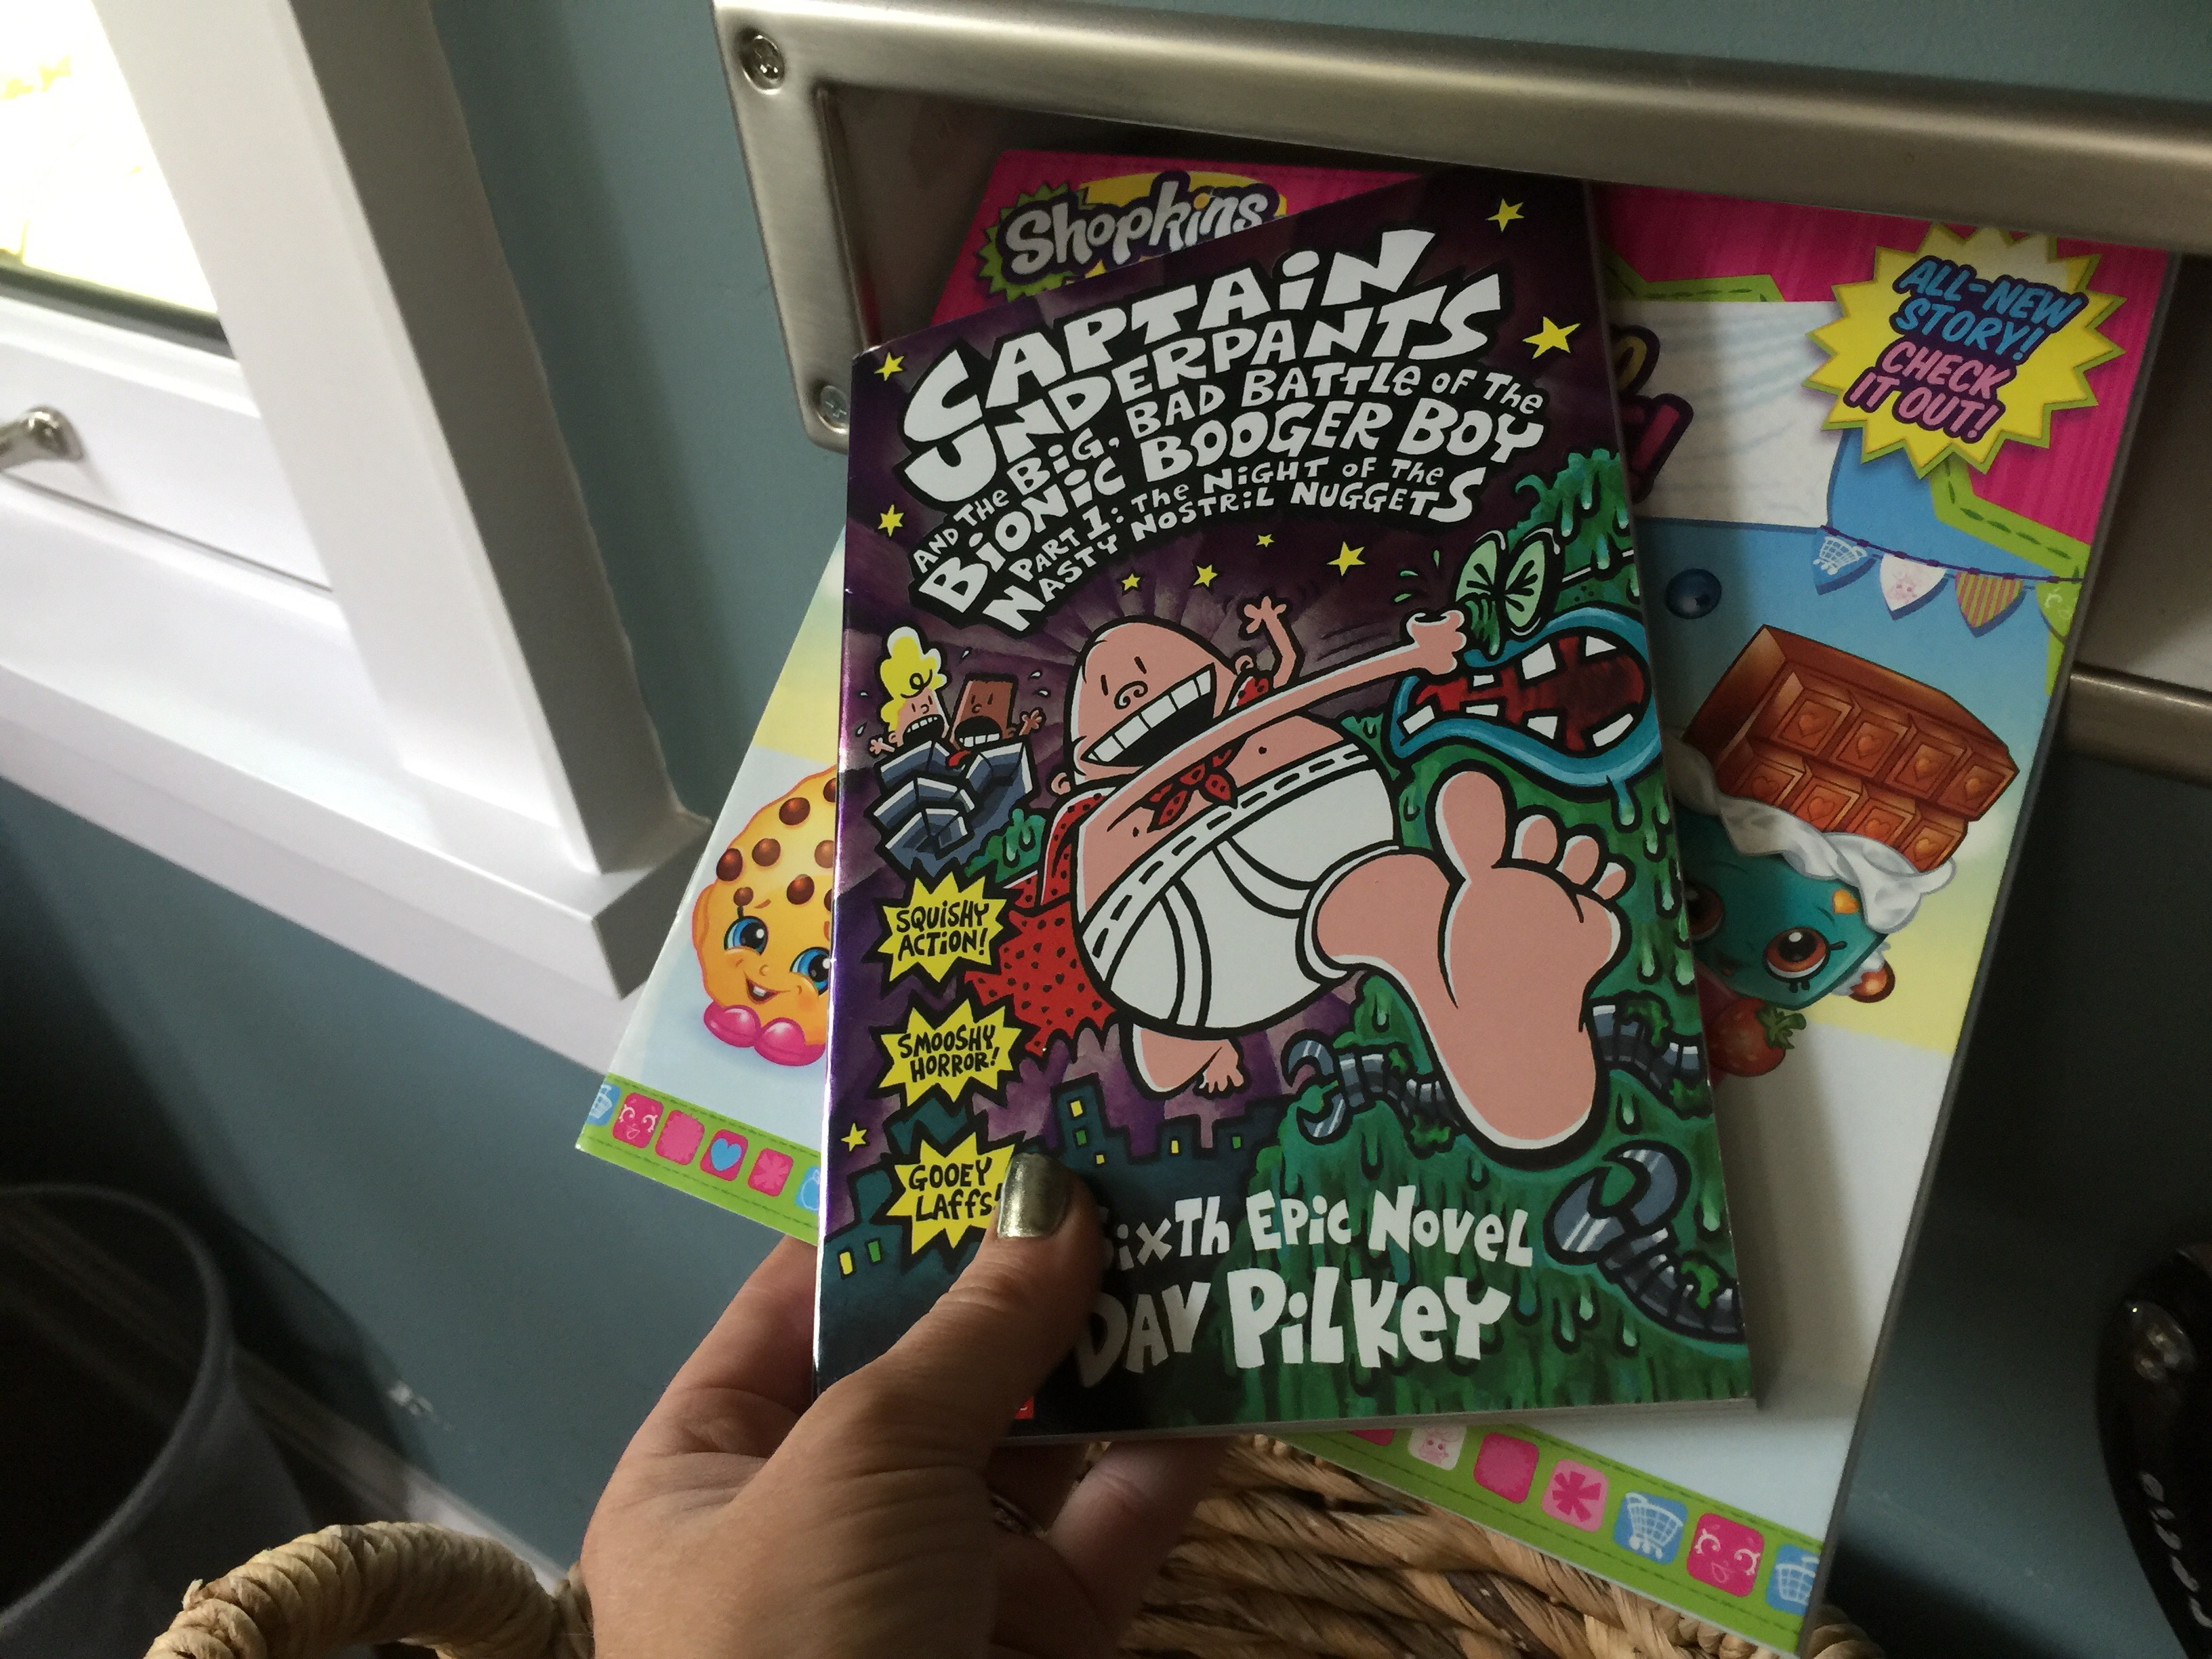 hand holding a Captain Underpants and Shopkins book